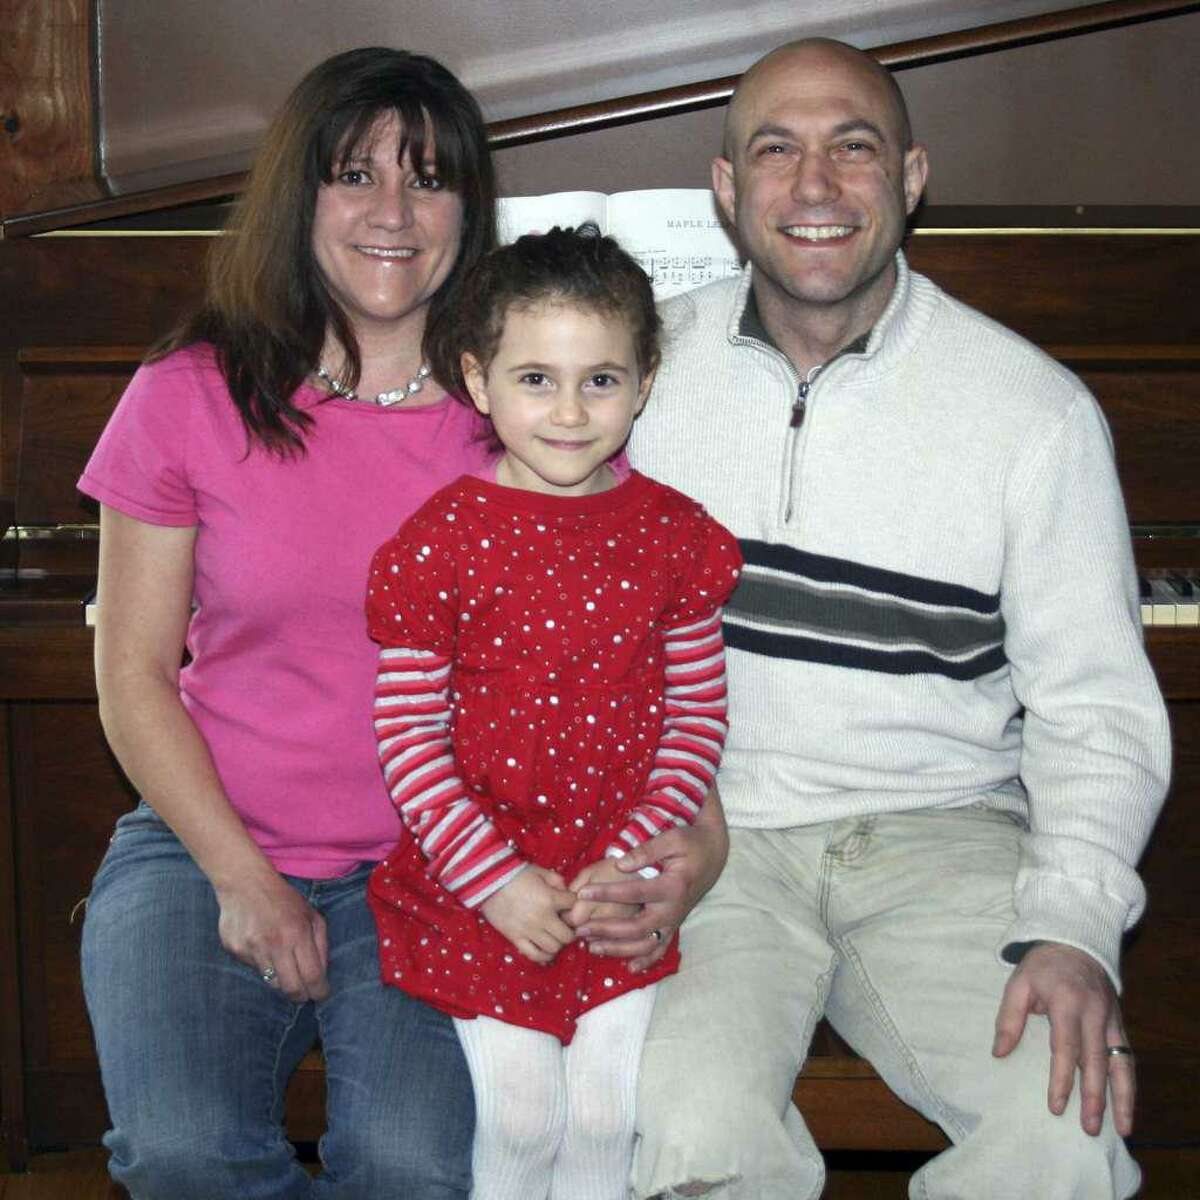 This April 2012 file photo provided by the family shows Avielle Richman, center, with her parents Jennifer Hensel and Jeremy Richman in Boston. Avielle was among the 20 children killed in the Dec. 14, 2012 Sandy Hook Elementary School shooting in Newtown.